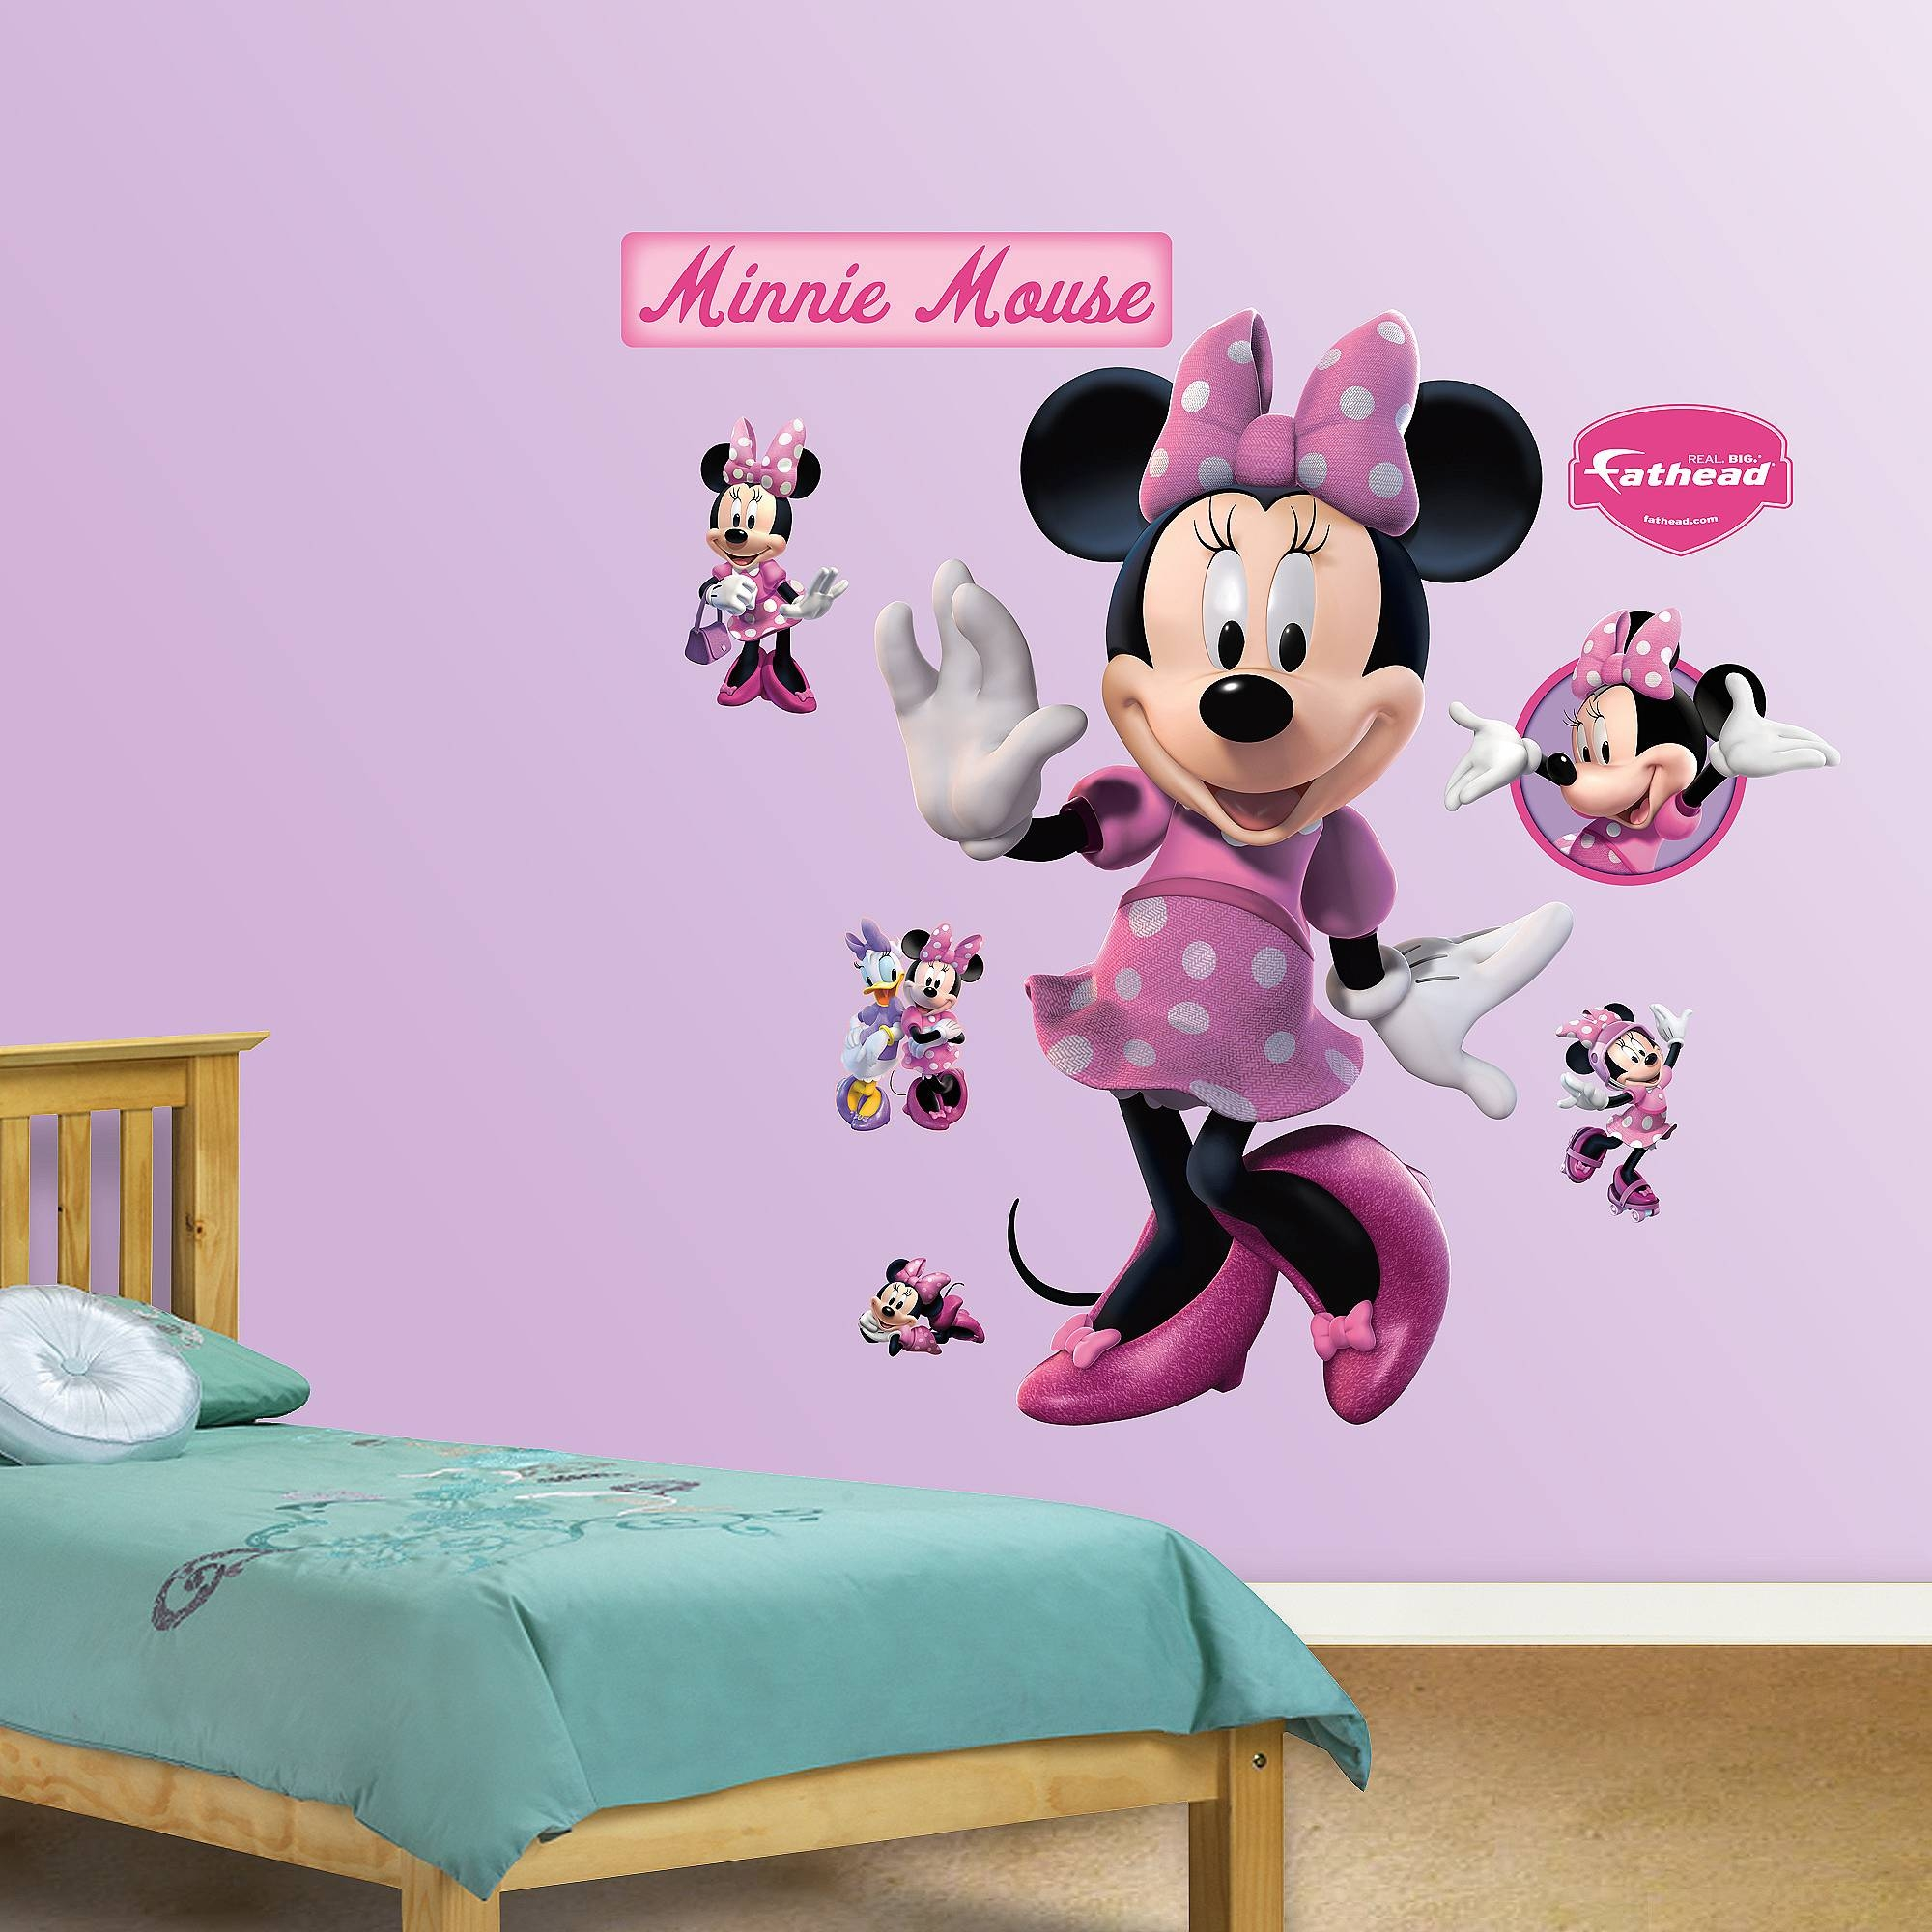 Fathead Wall Decals Pertaining To Most Popular Preschool Classroom Wall Decals (View 11 of 30)